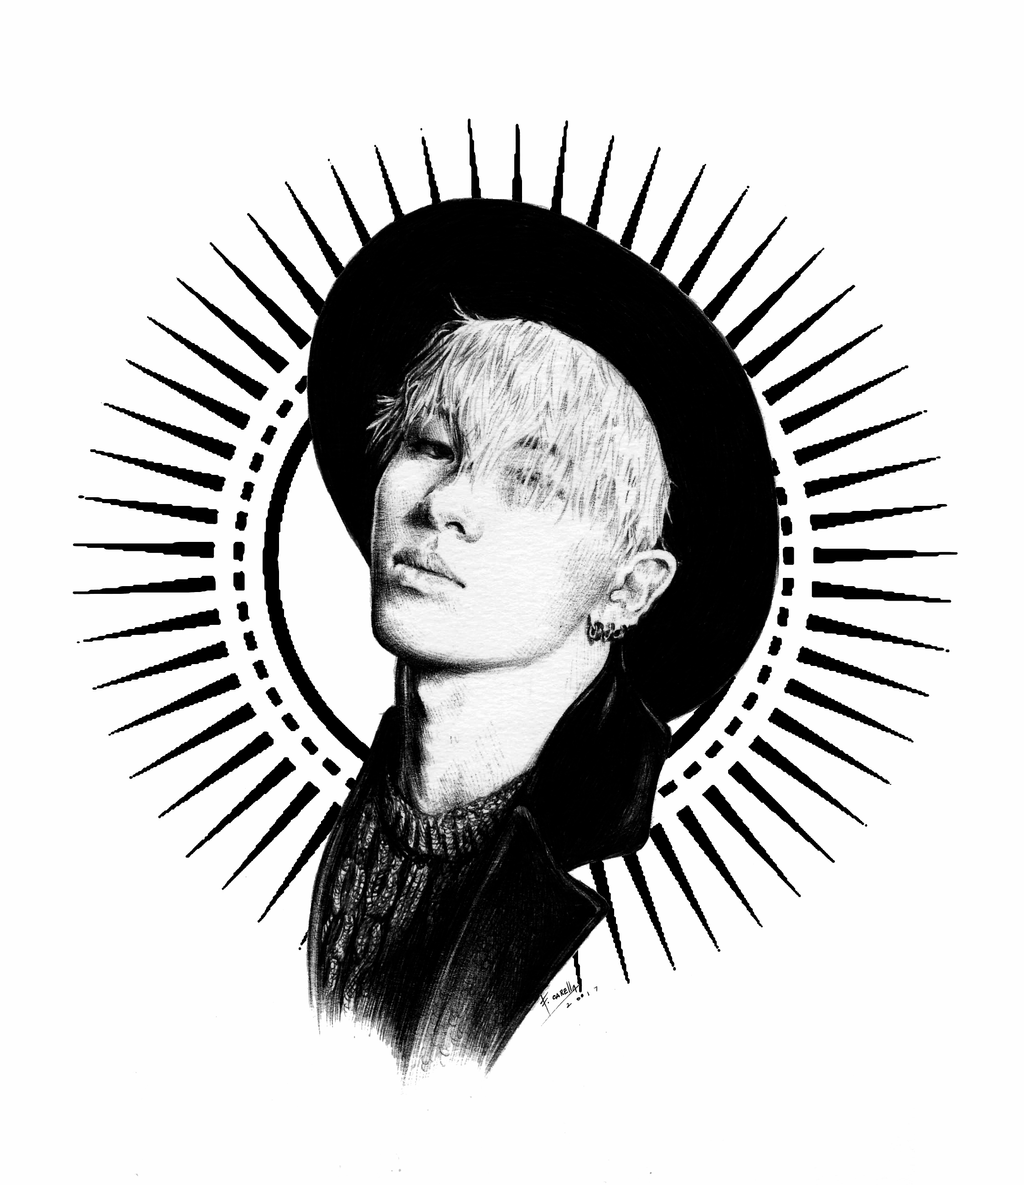 taeyang sketch 2 with solar logo by carellaart on deviantart